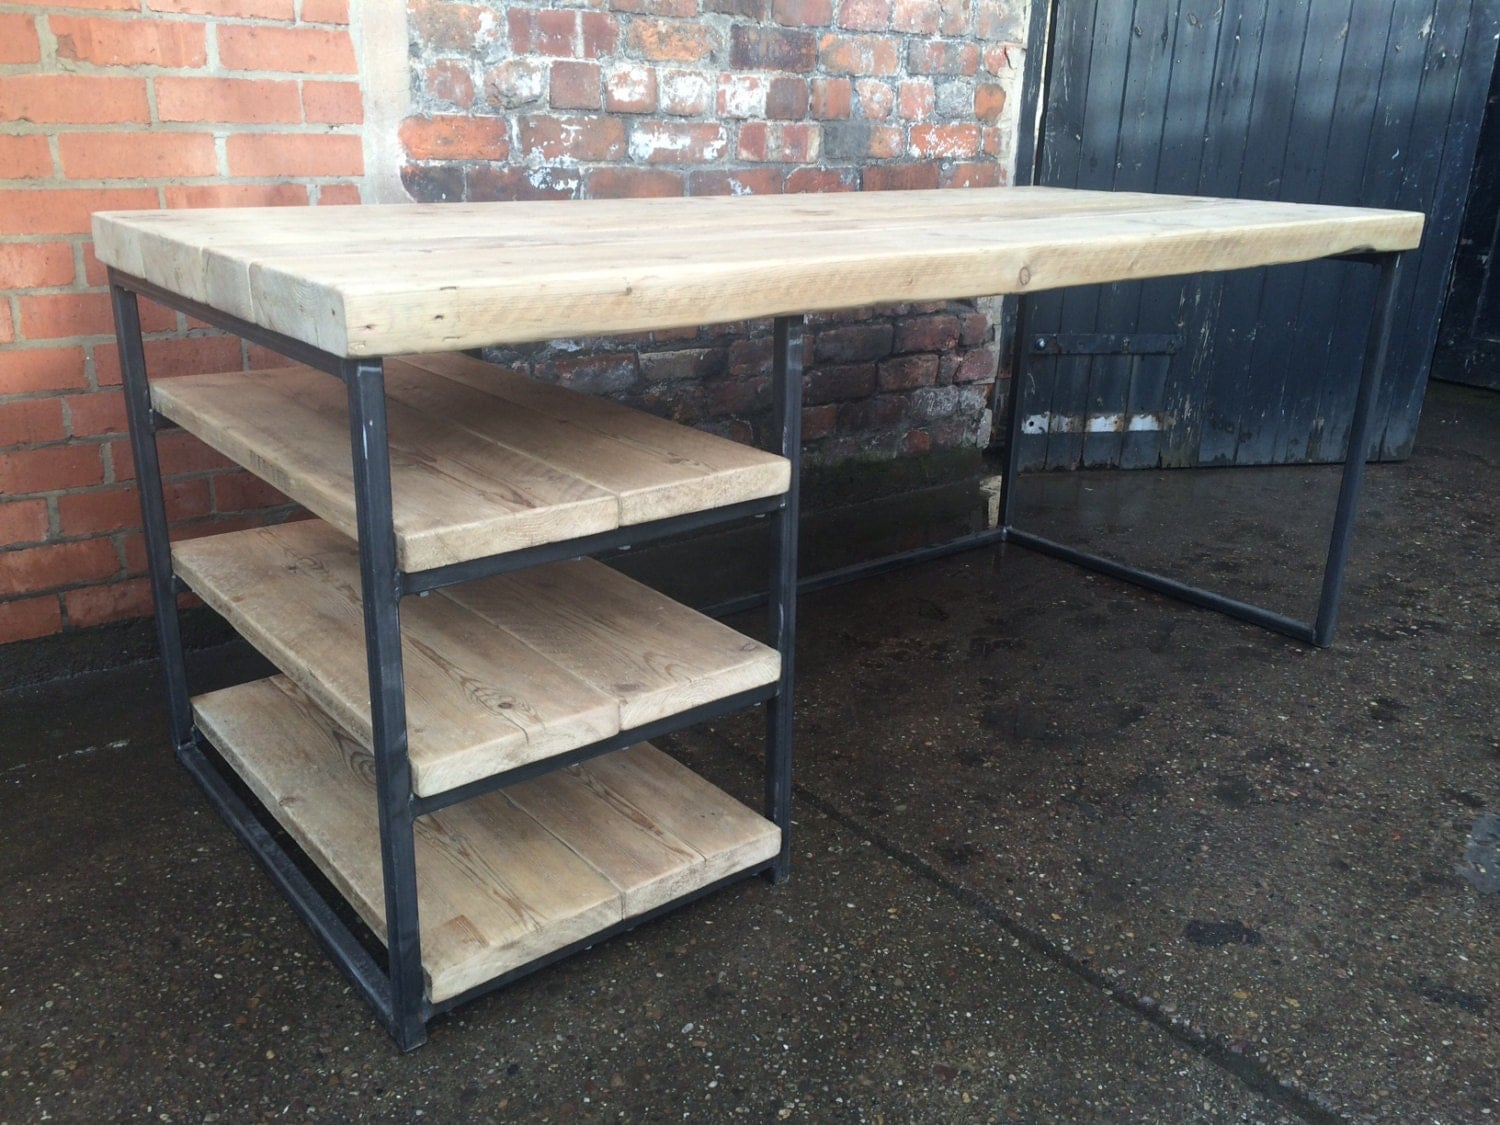 Reclaimed Industrial Chic Wood & Metal Desk Dining Table With